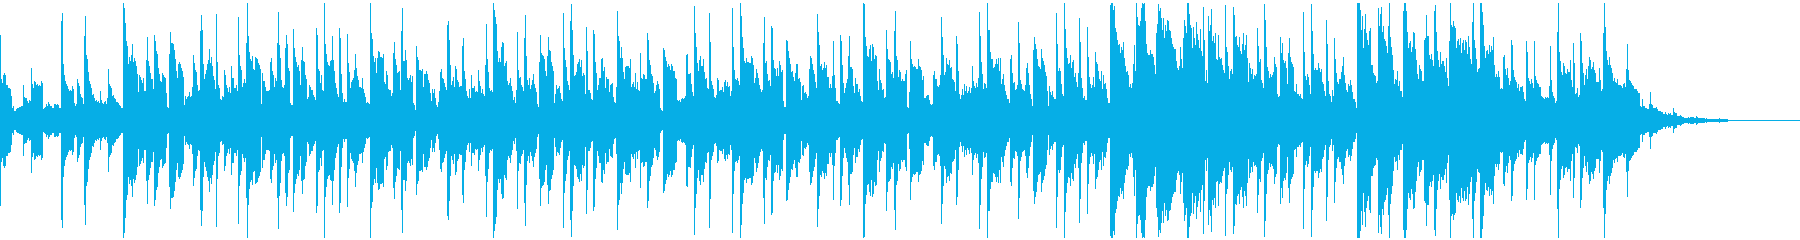 Electronic, mid-t...'s reproduced waveform